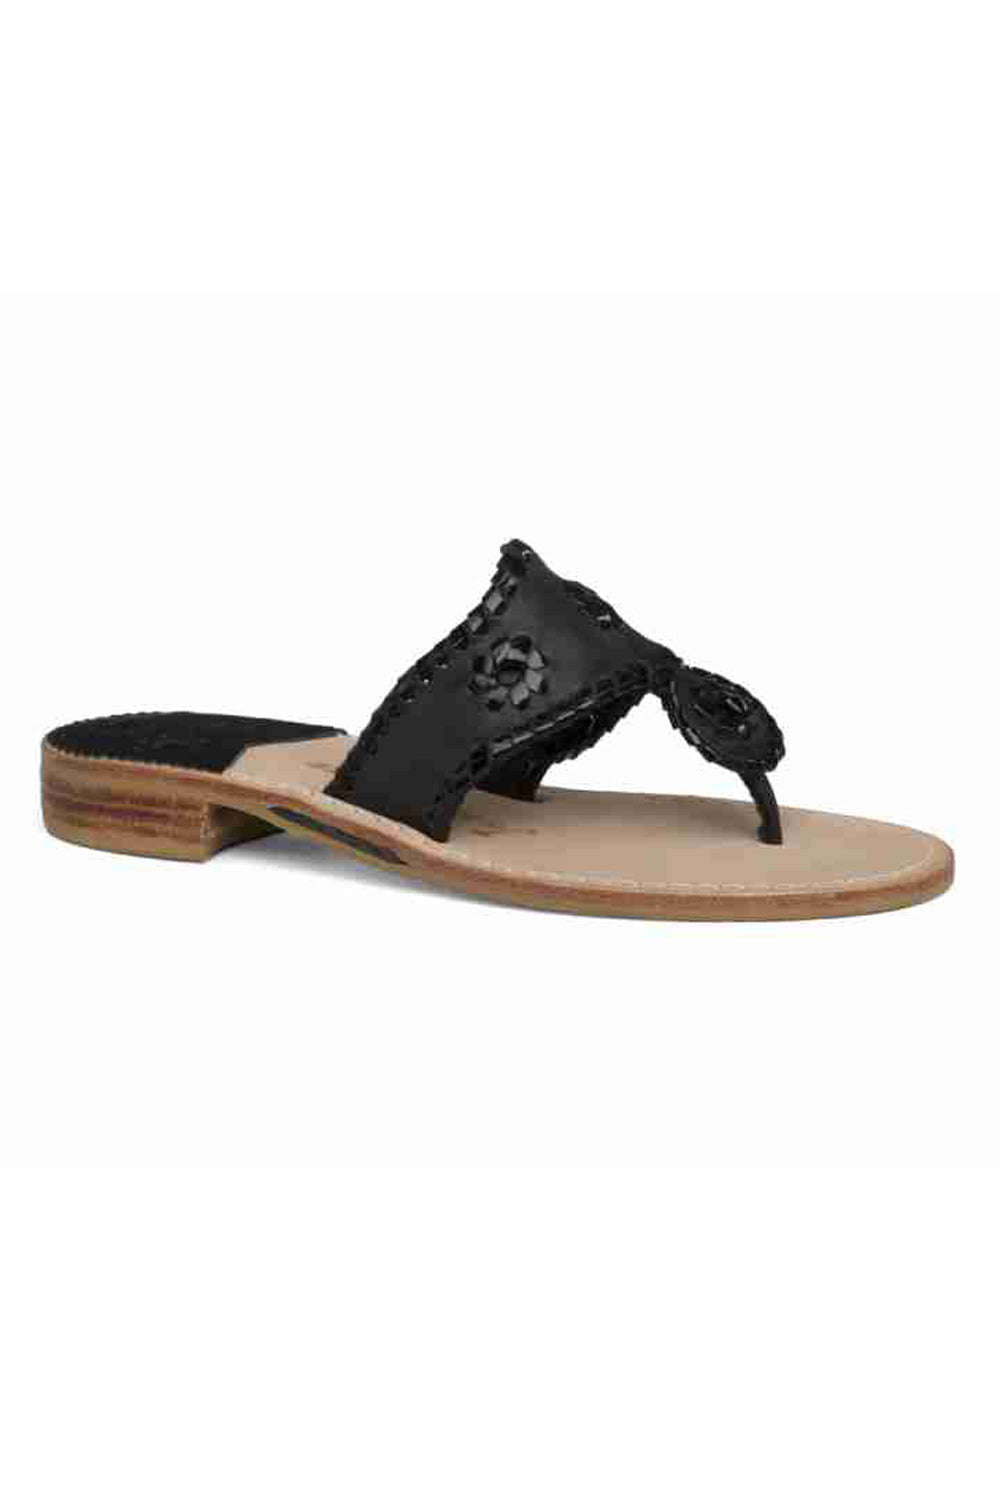 Palm Beach Sandal - Black Patent